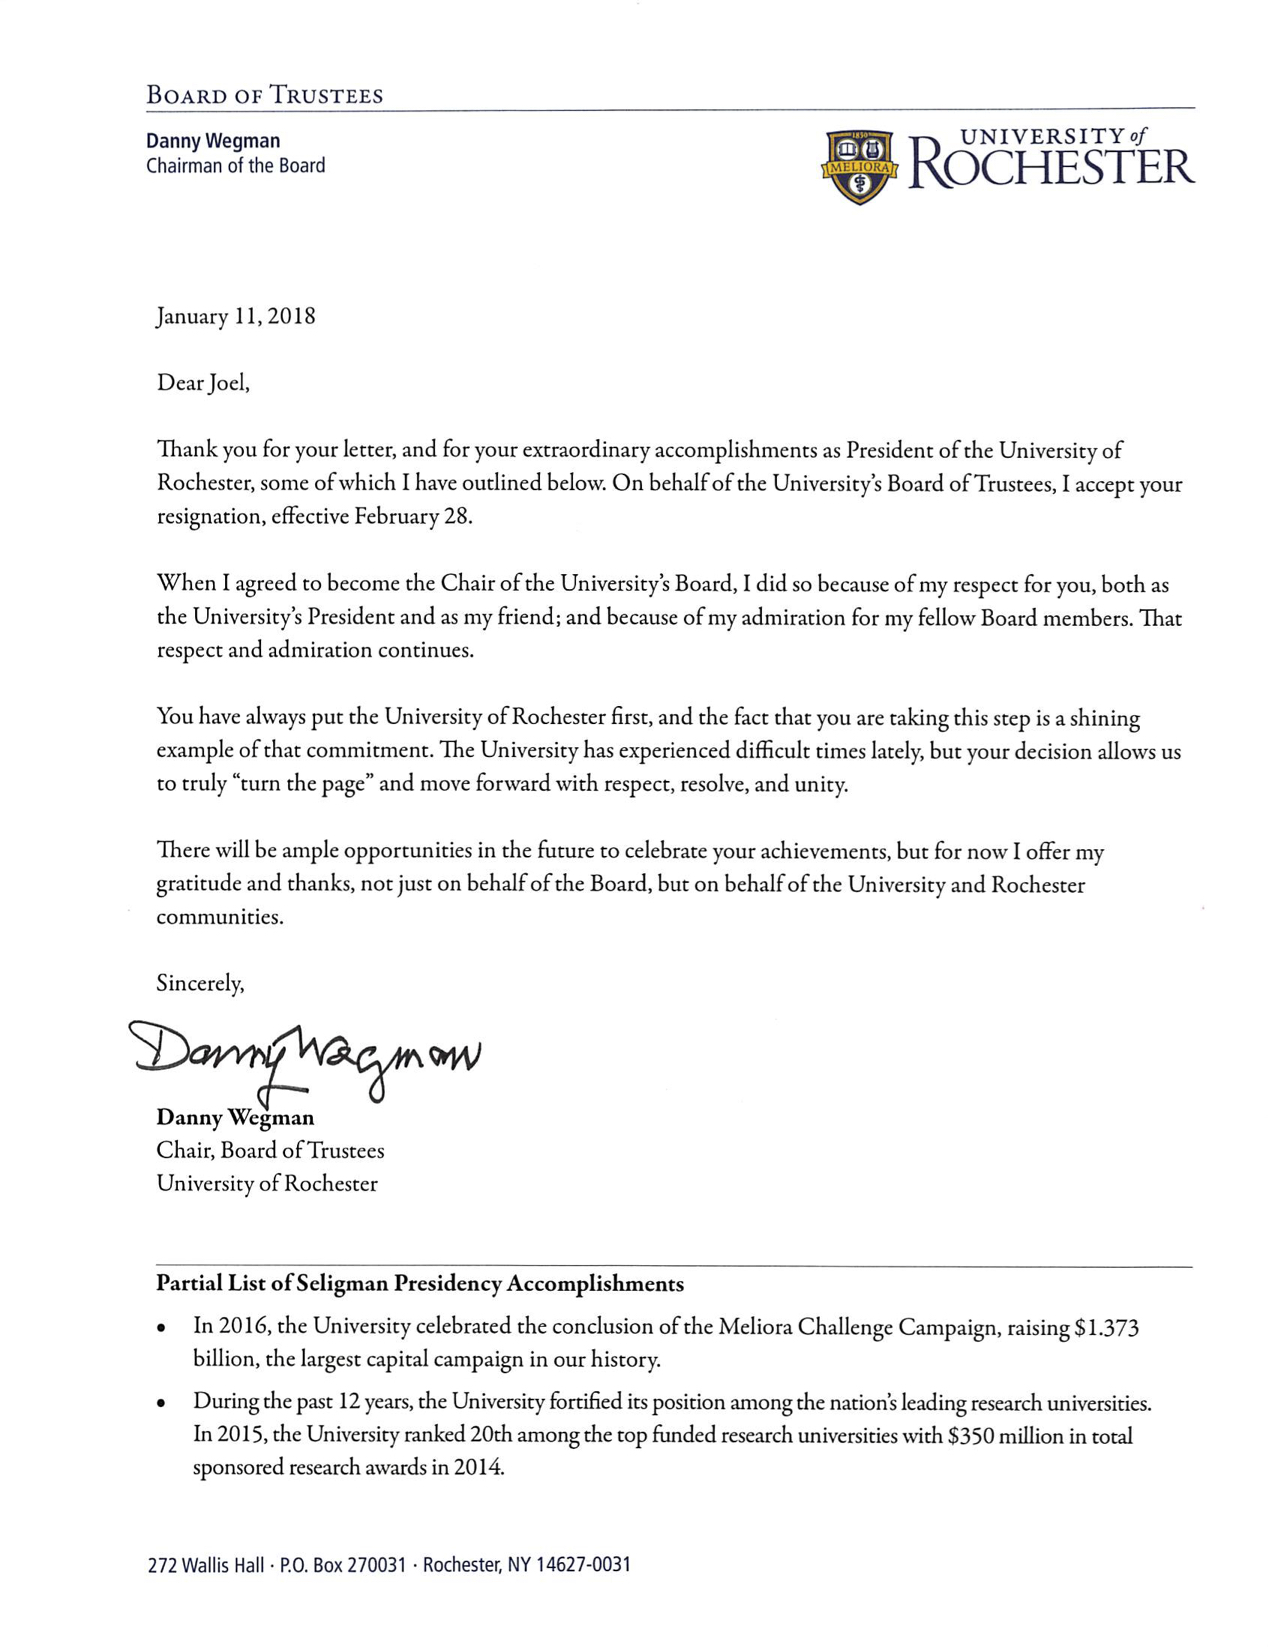 Letter from Danny Wegman, Chair of the Board of Trustees, University of Rochester